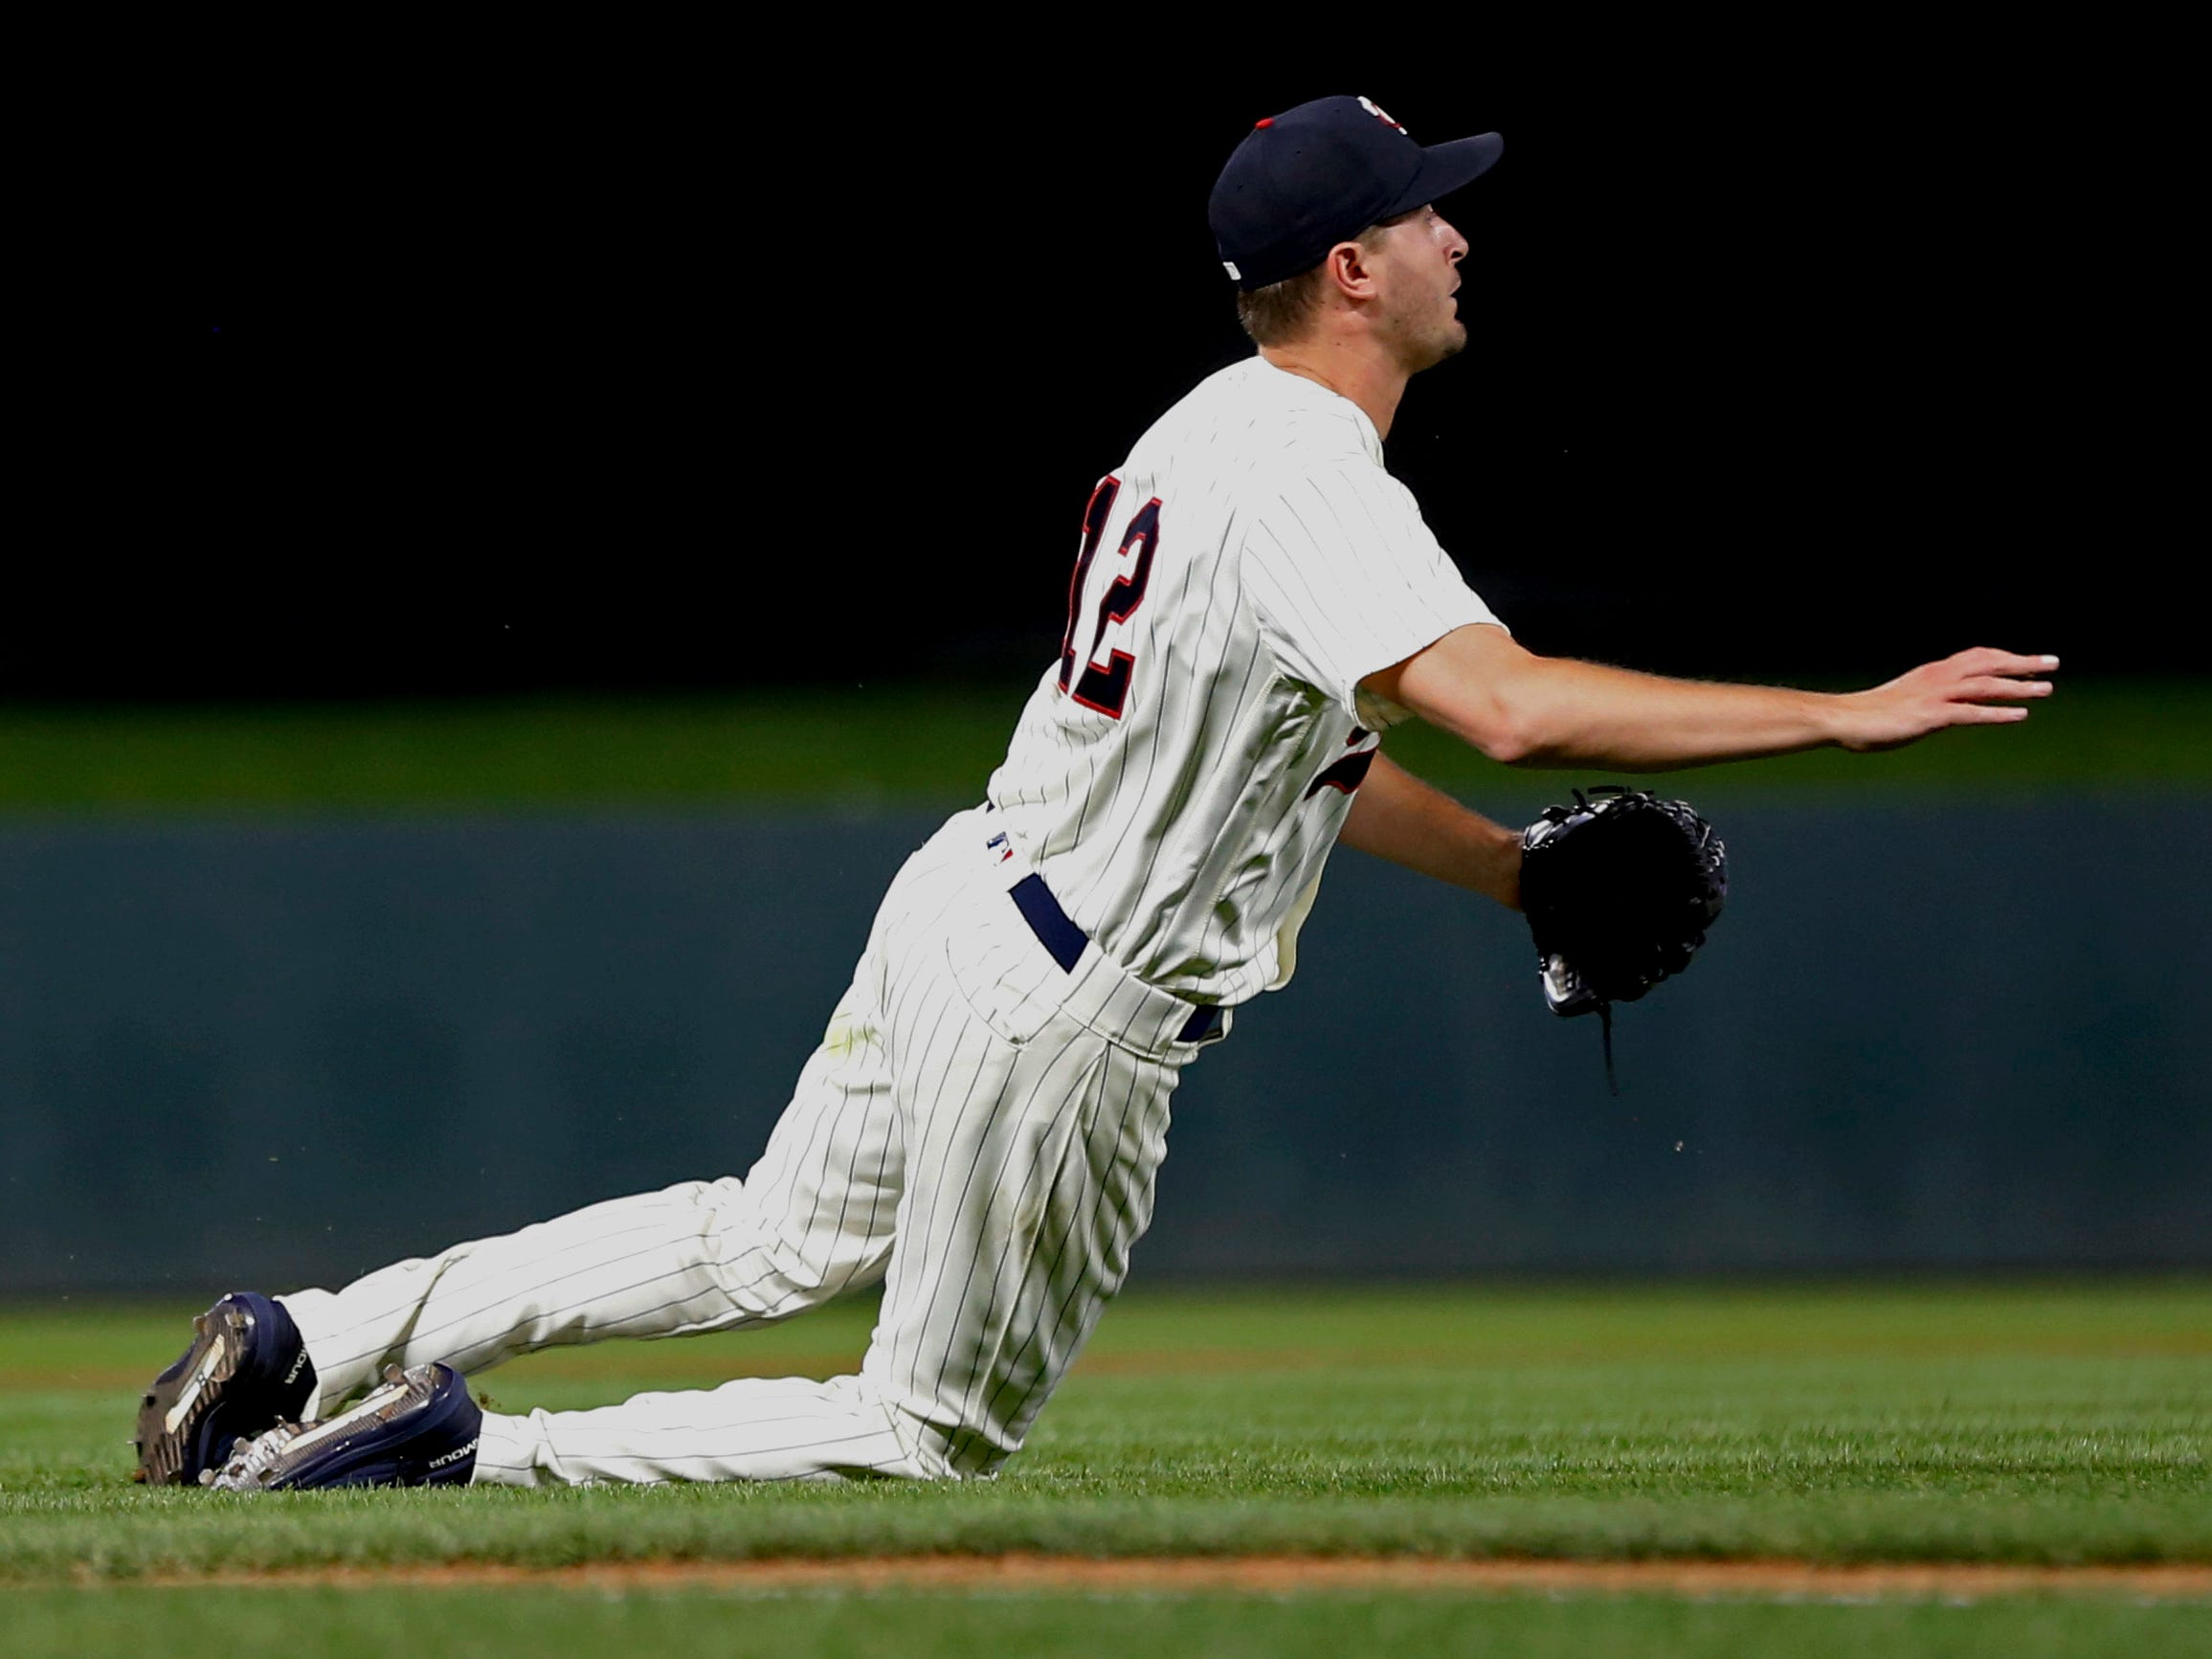 Minnesota Twins pitcher Jake Odorizzi watches as he throws out New York Yankees' Didi Gregorius who grounded to him in the fifth inning of a baseball game Wednesday, Sept. 12, 2018, in Minneapolis.